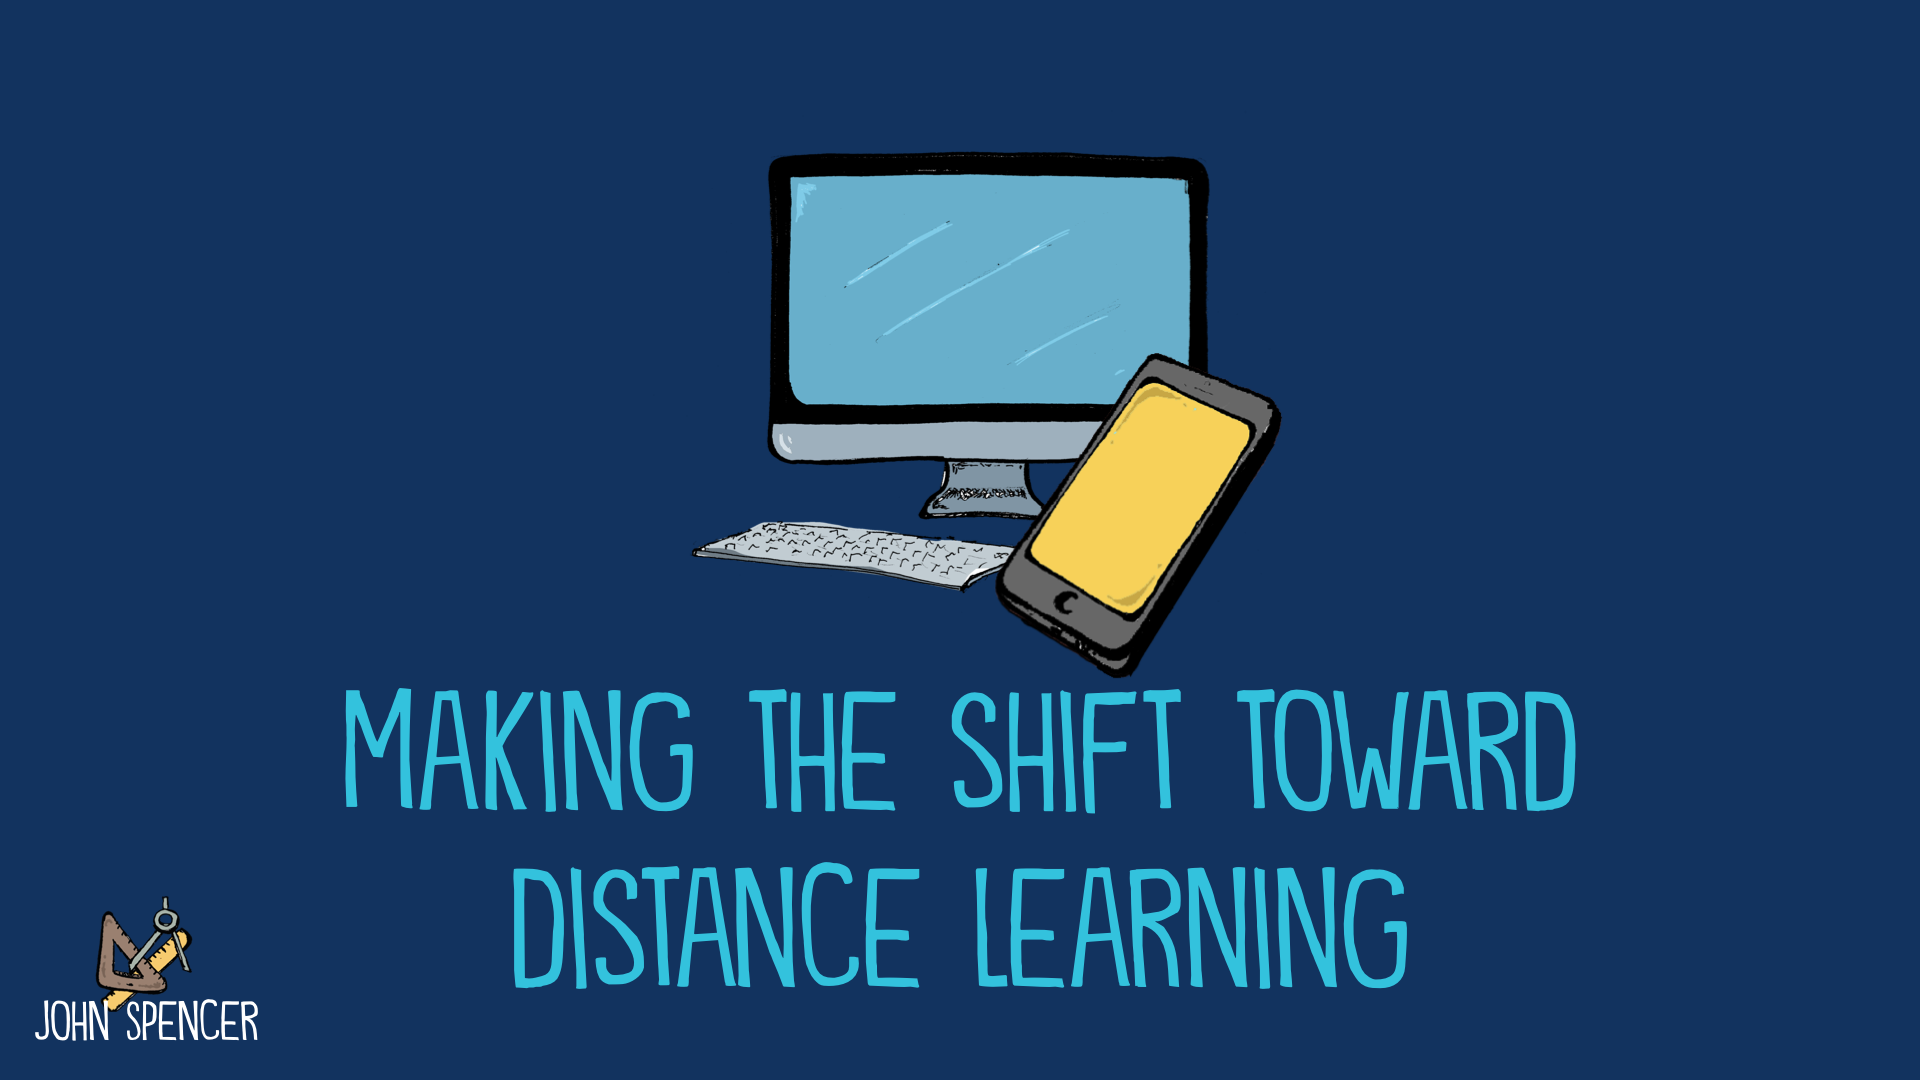 7 Big Ideas as You Shift Toward Online Teaching